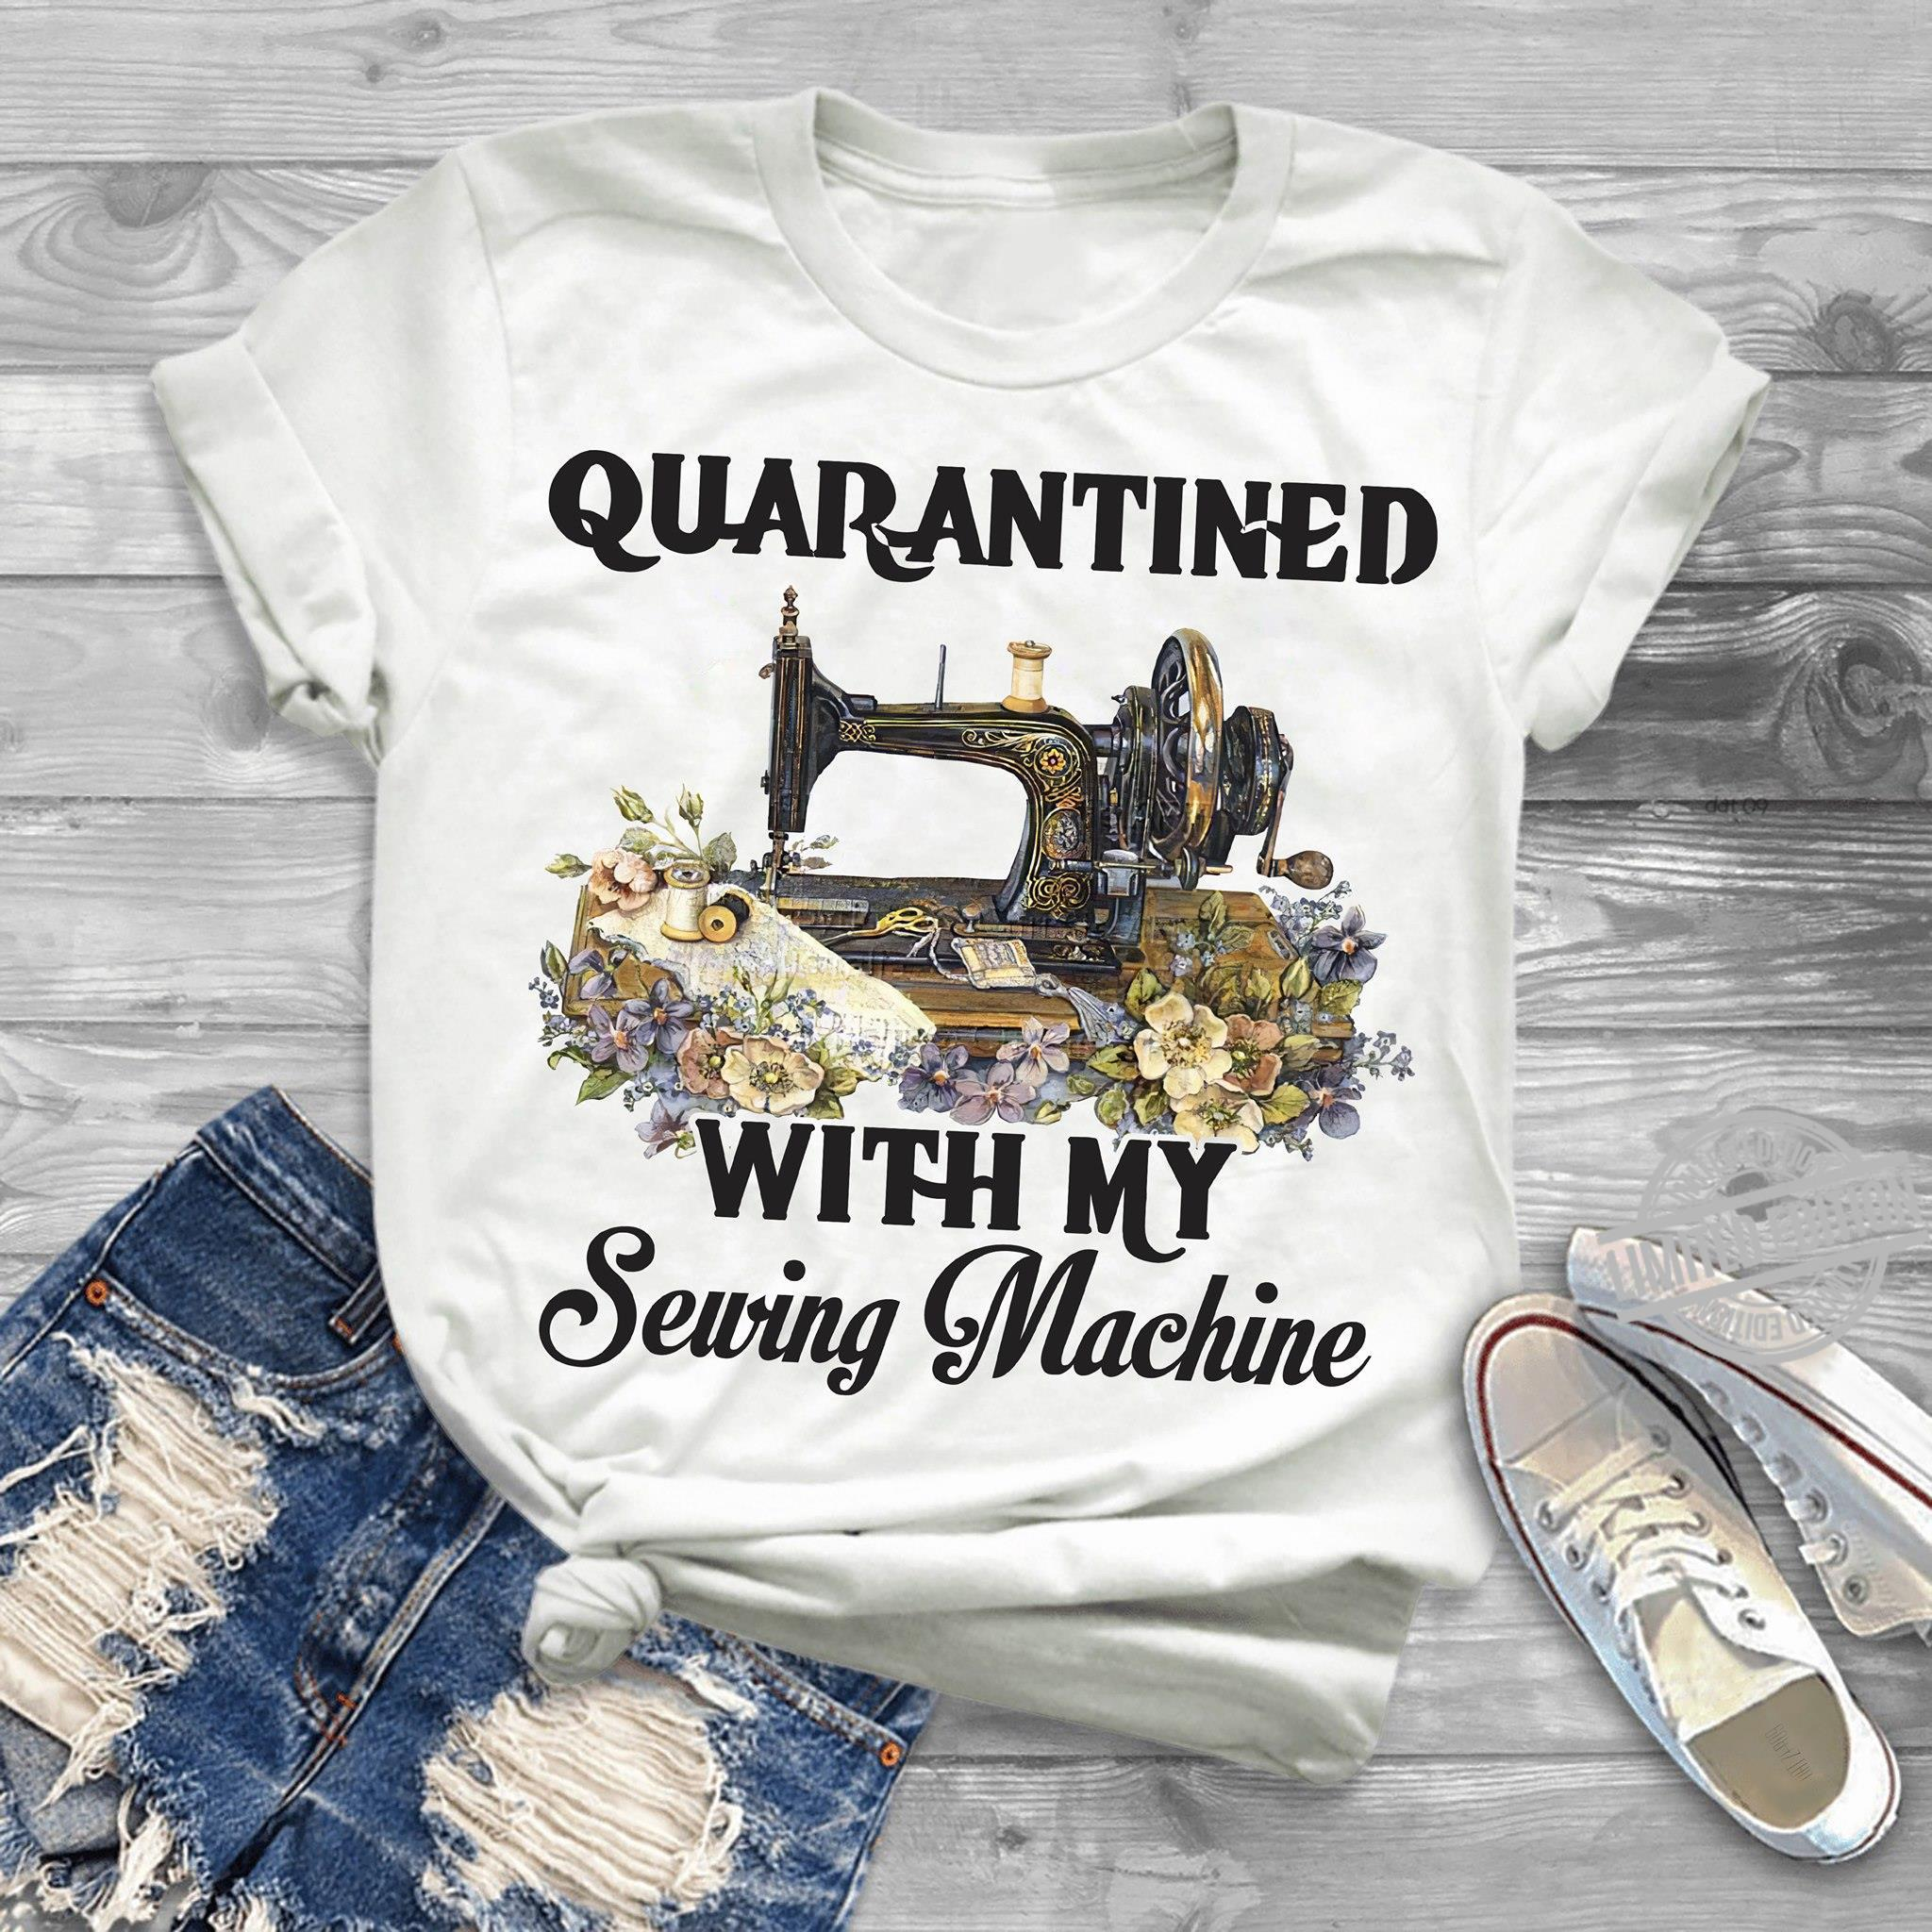 Quanrantined With My Sewing Machine Shirt